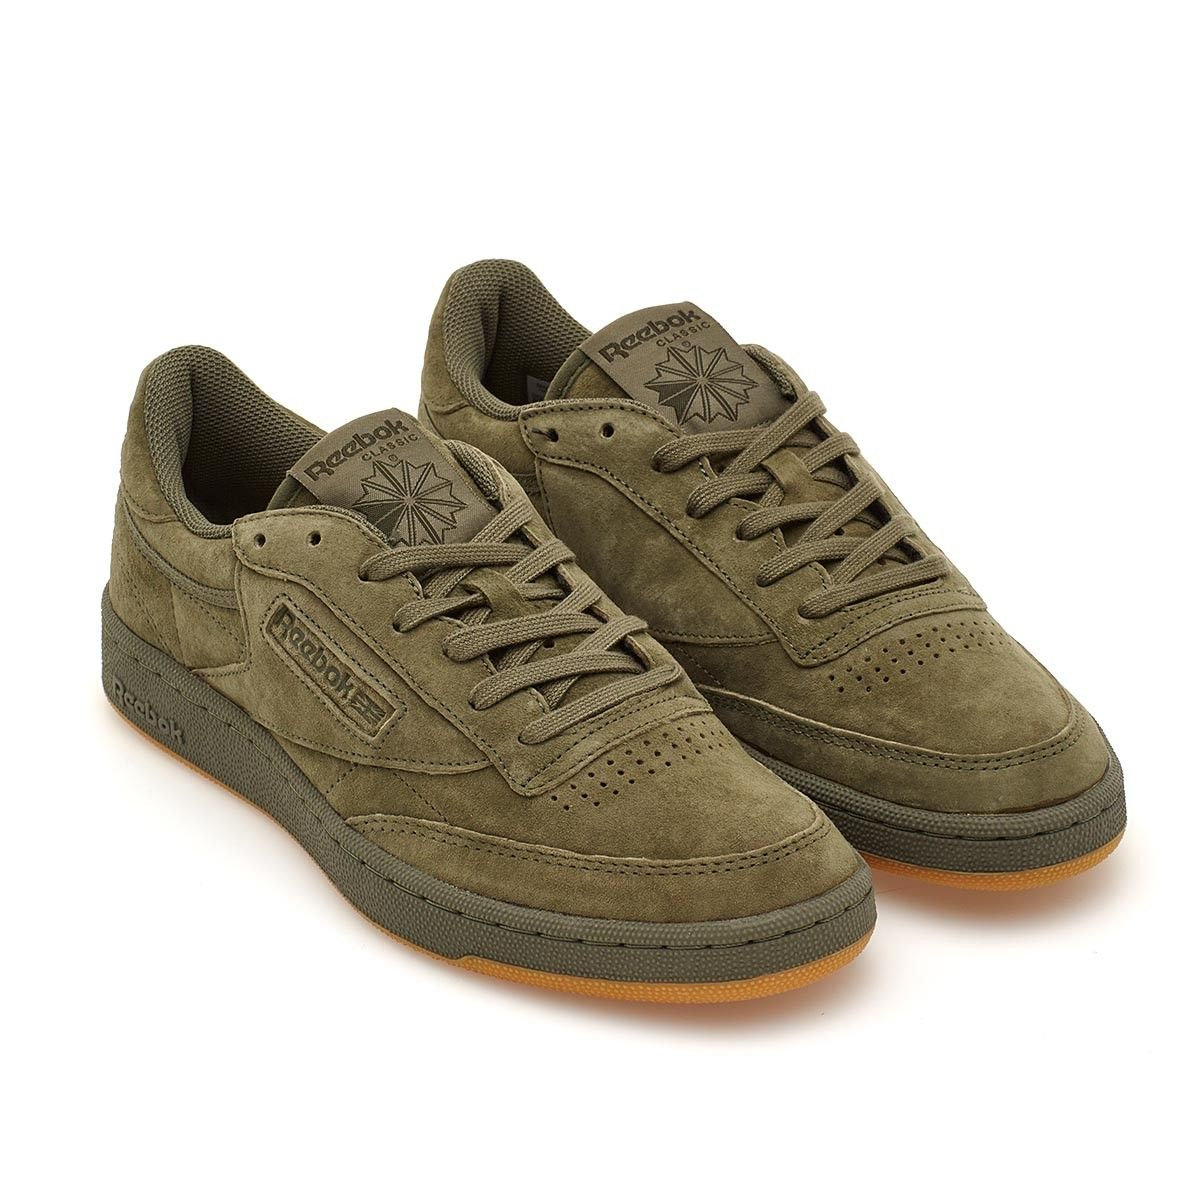 4b7a540b55c8d Club C 85 TG from the S S2017 Reebok collection in hunter green This  vintage look iconic sneaker is from Reebok collection. The Club C 85 TG  sneakers